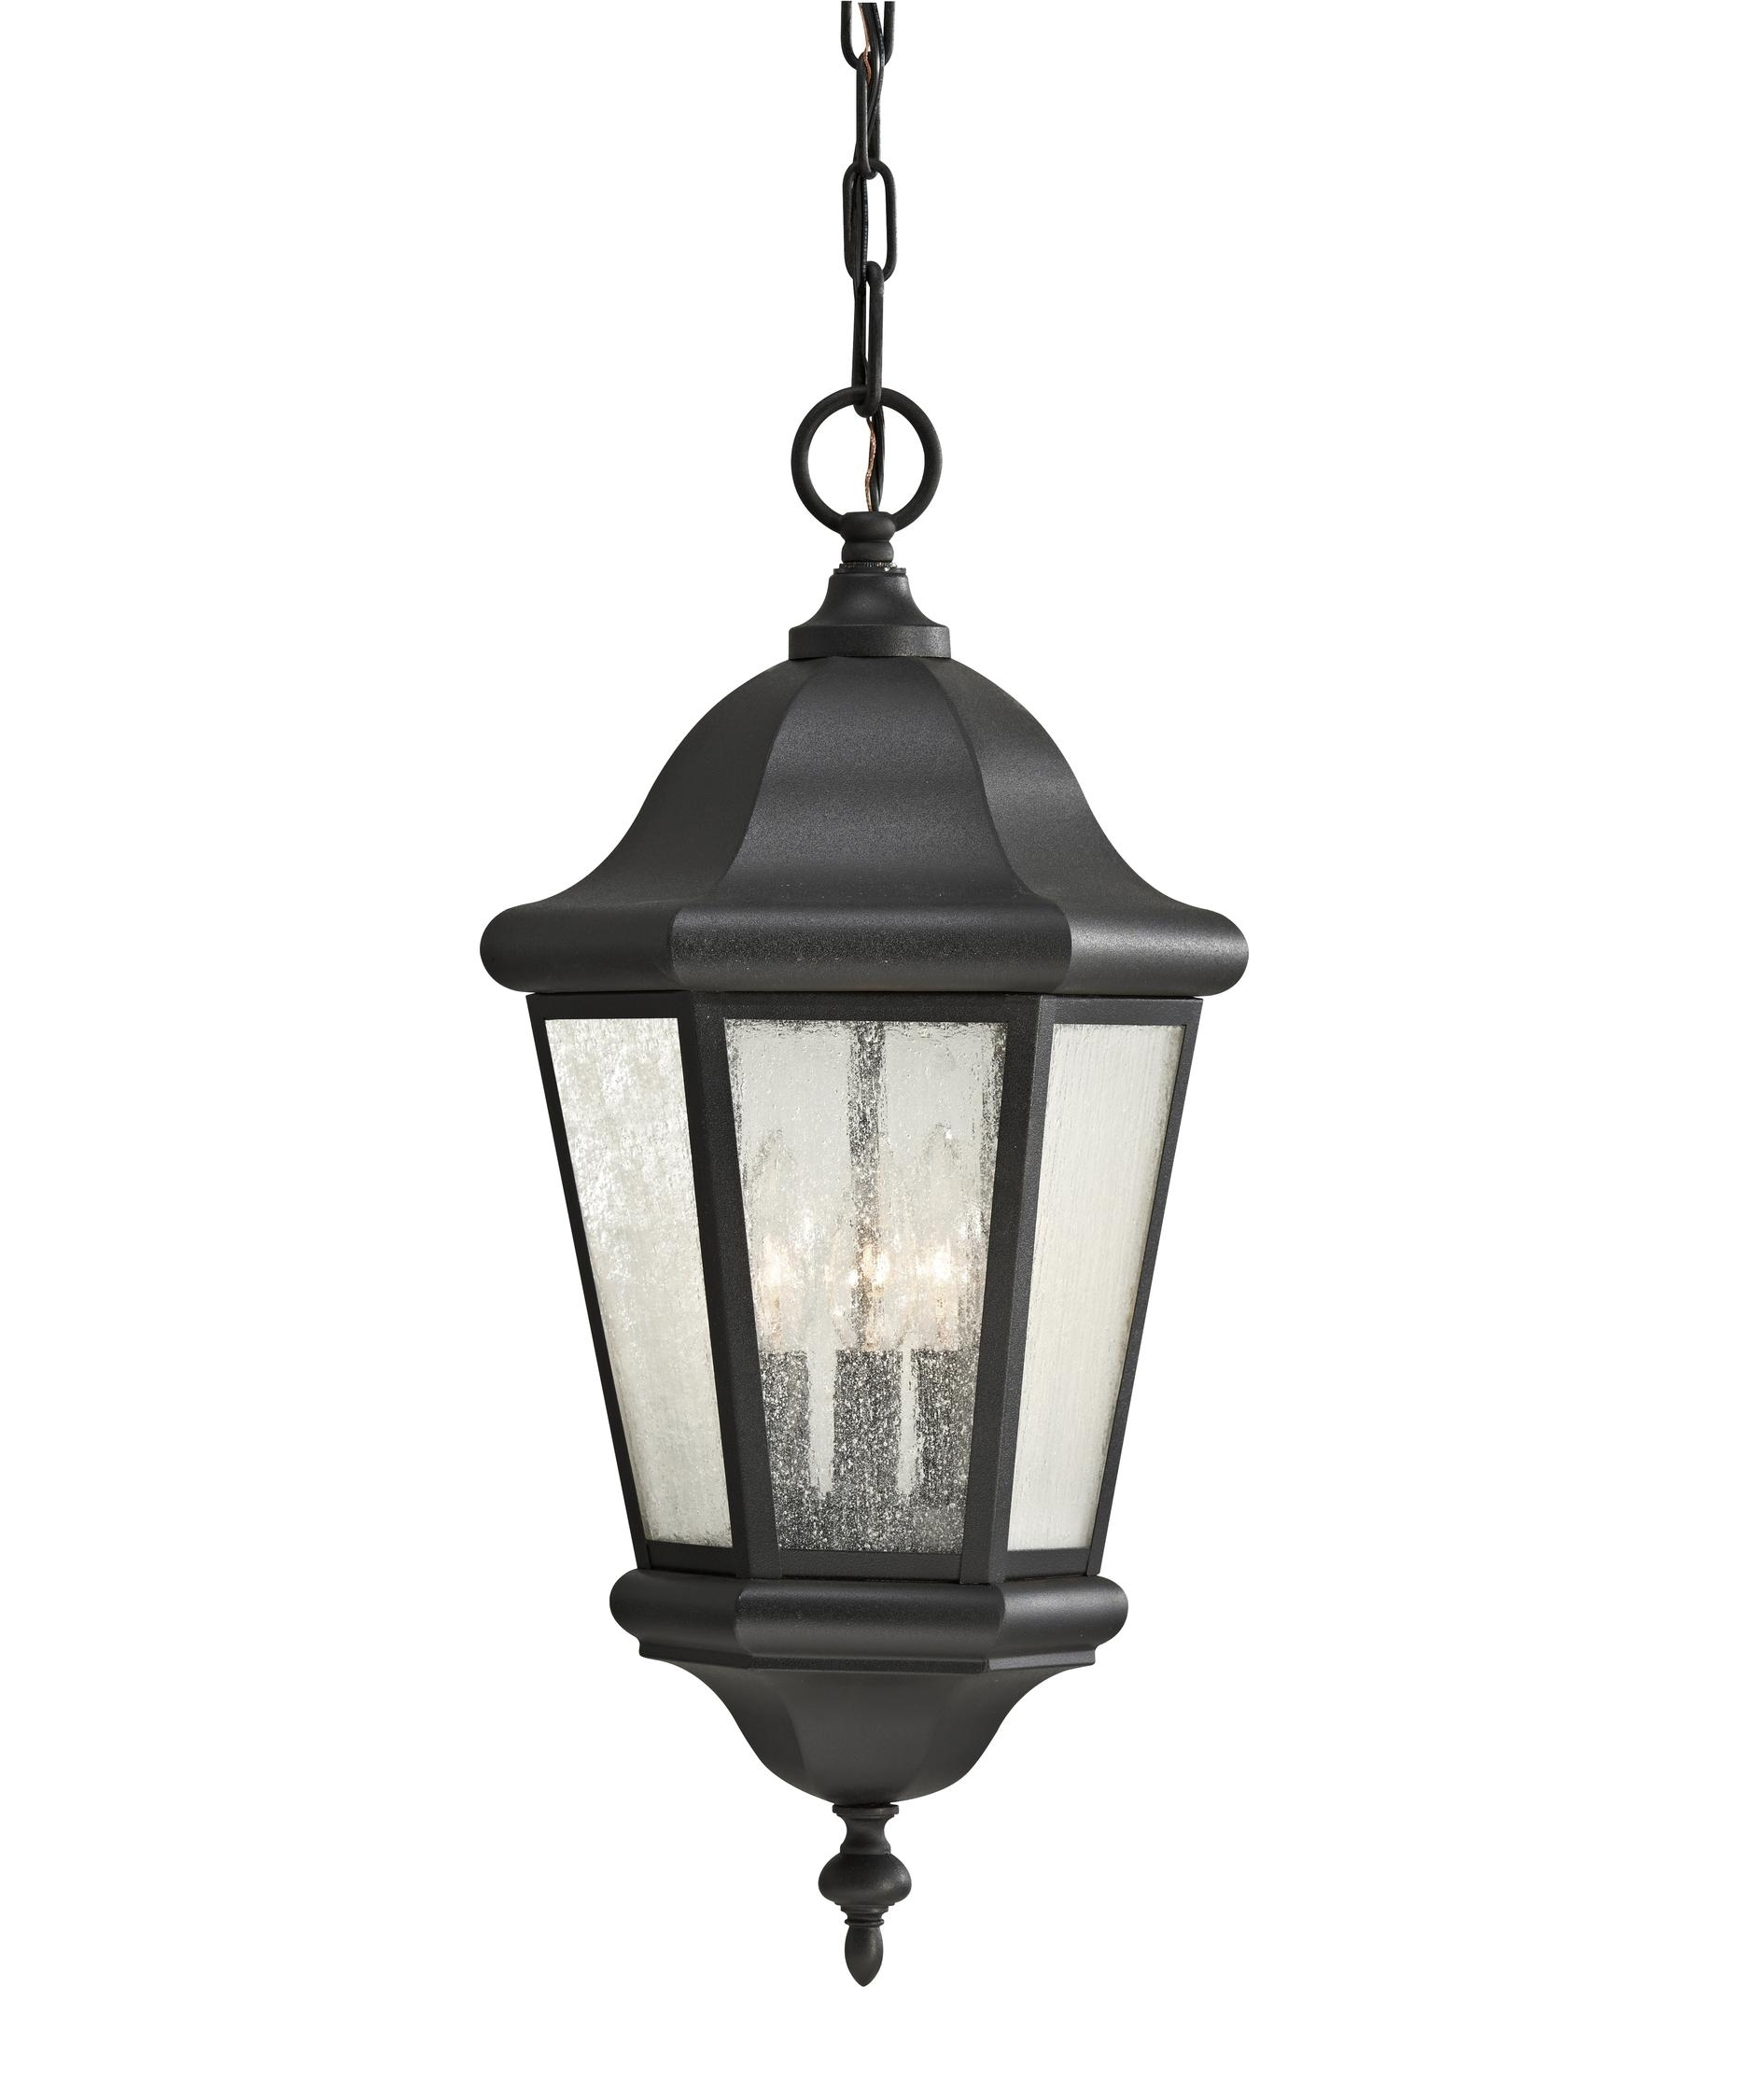 Newest Solar Powered Outdoor Hanging Lanterns In Outdoor : Decorative 2 Filigree Solar Lanterns Perfect For Patio Or (View 6 of 20)